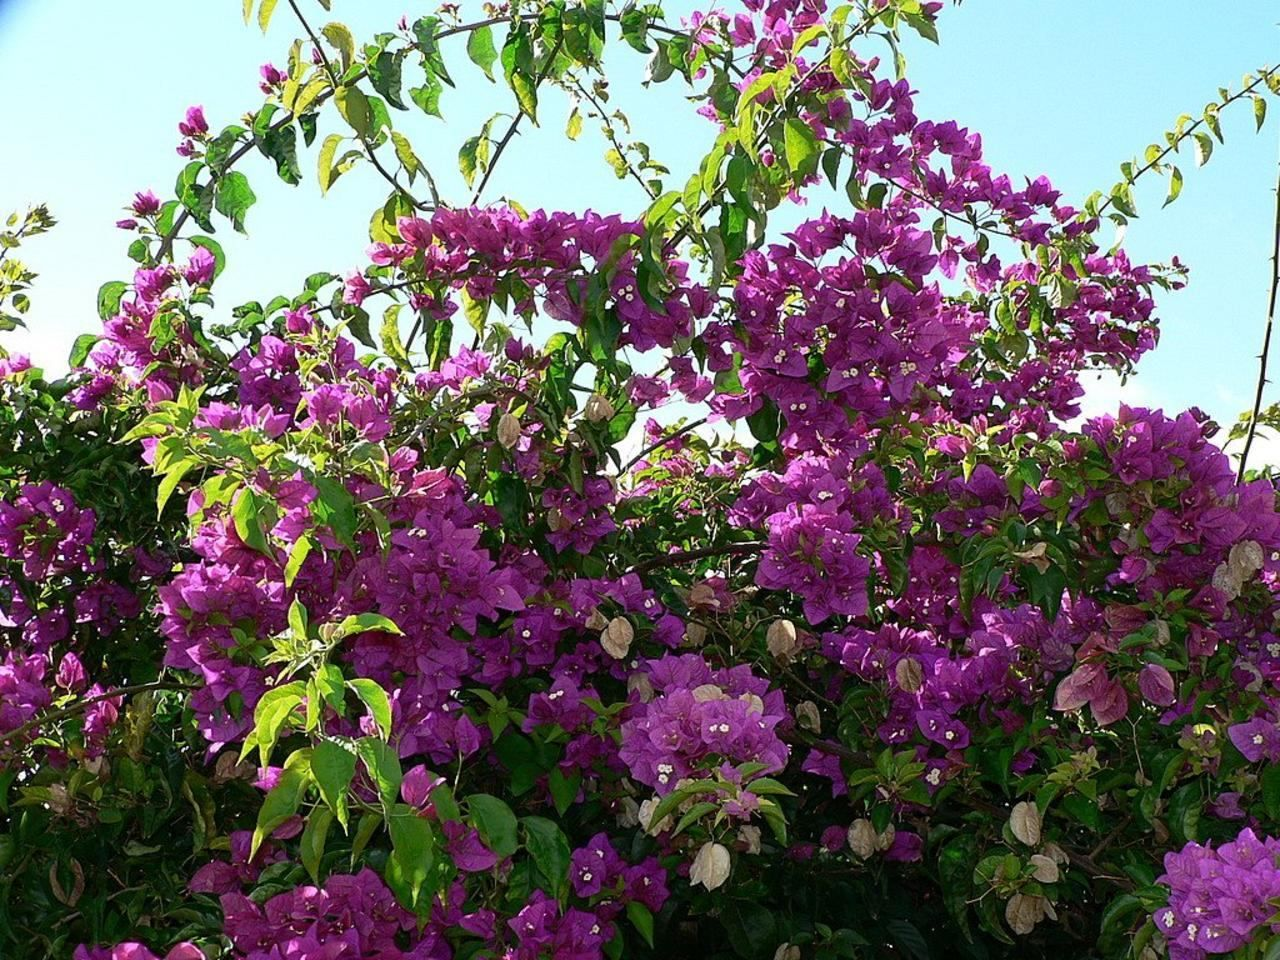 File:Bush with purple flowers.jpg